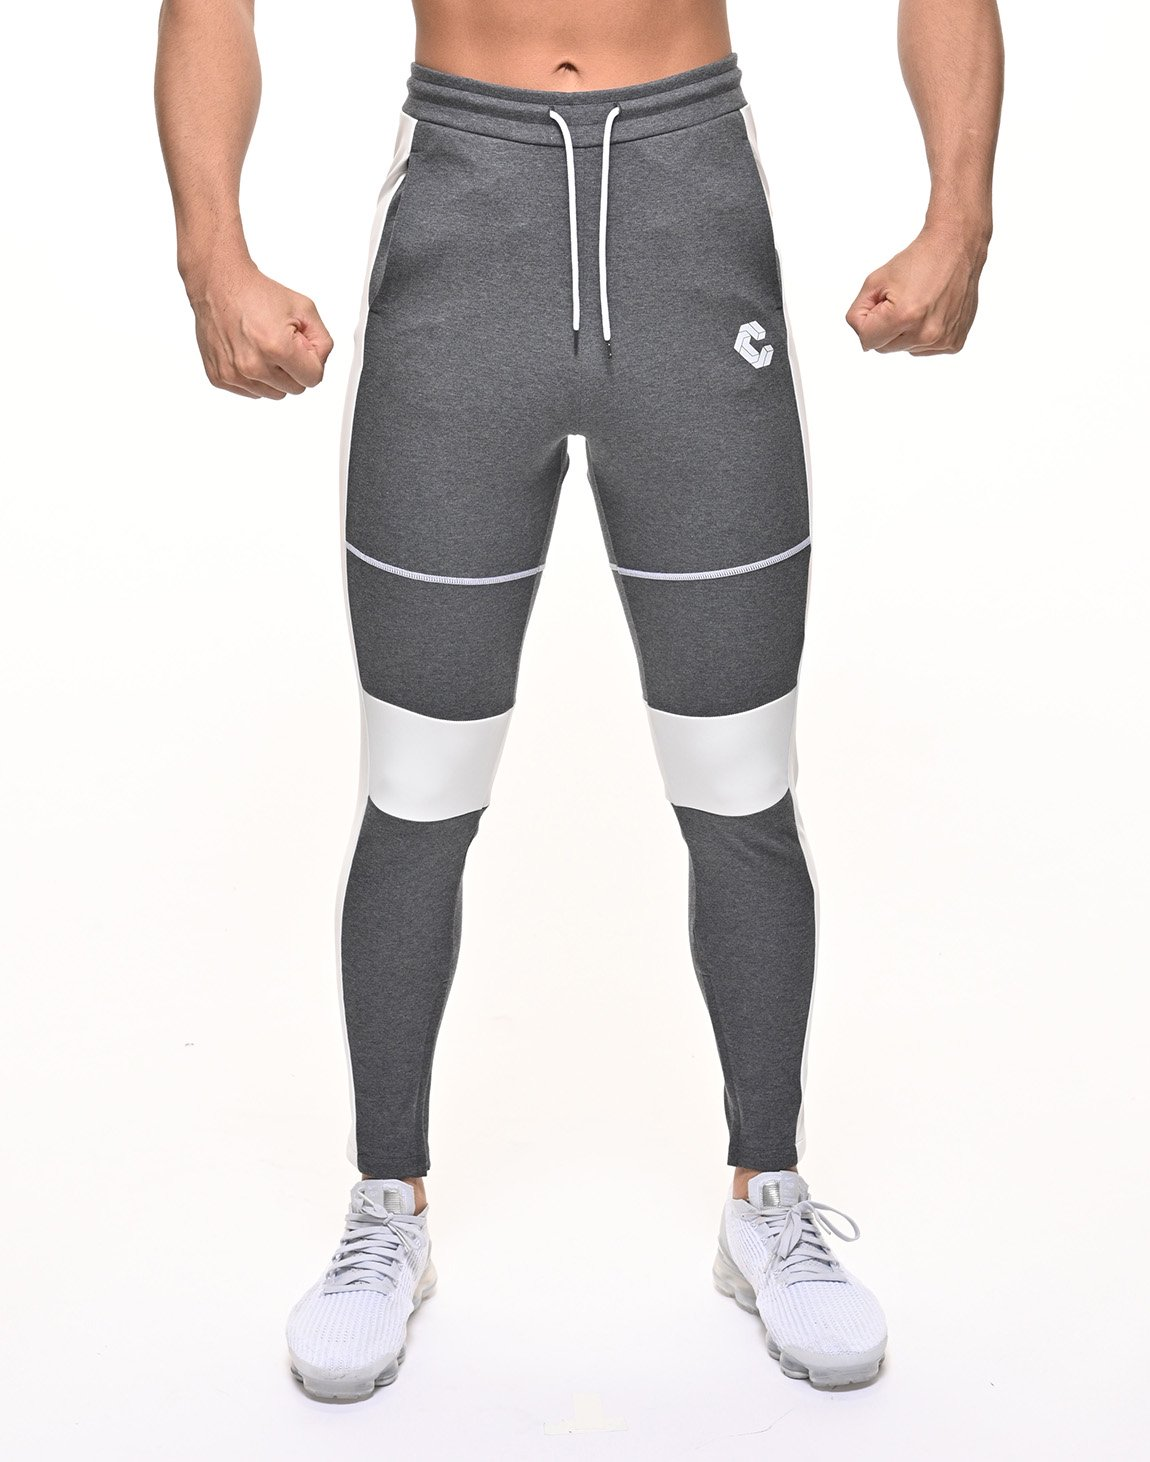 <img class='new_mark_img1' src='https://img.shop-pro.jp/img/new/icons55.gif' style='border:none;display:inline;margin:0px;padding:0px;width:auto;' />CRONOS THIGH STITCH LINE PANTS 【C.GRAY】